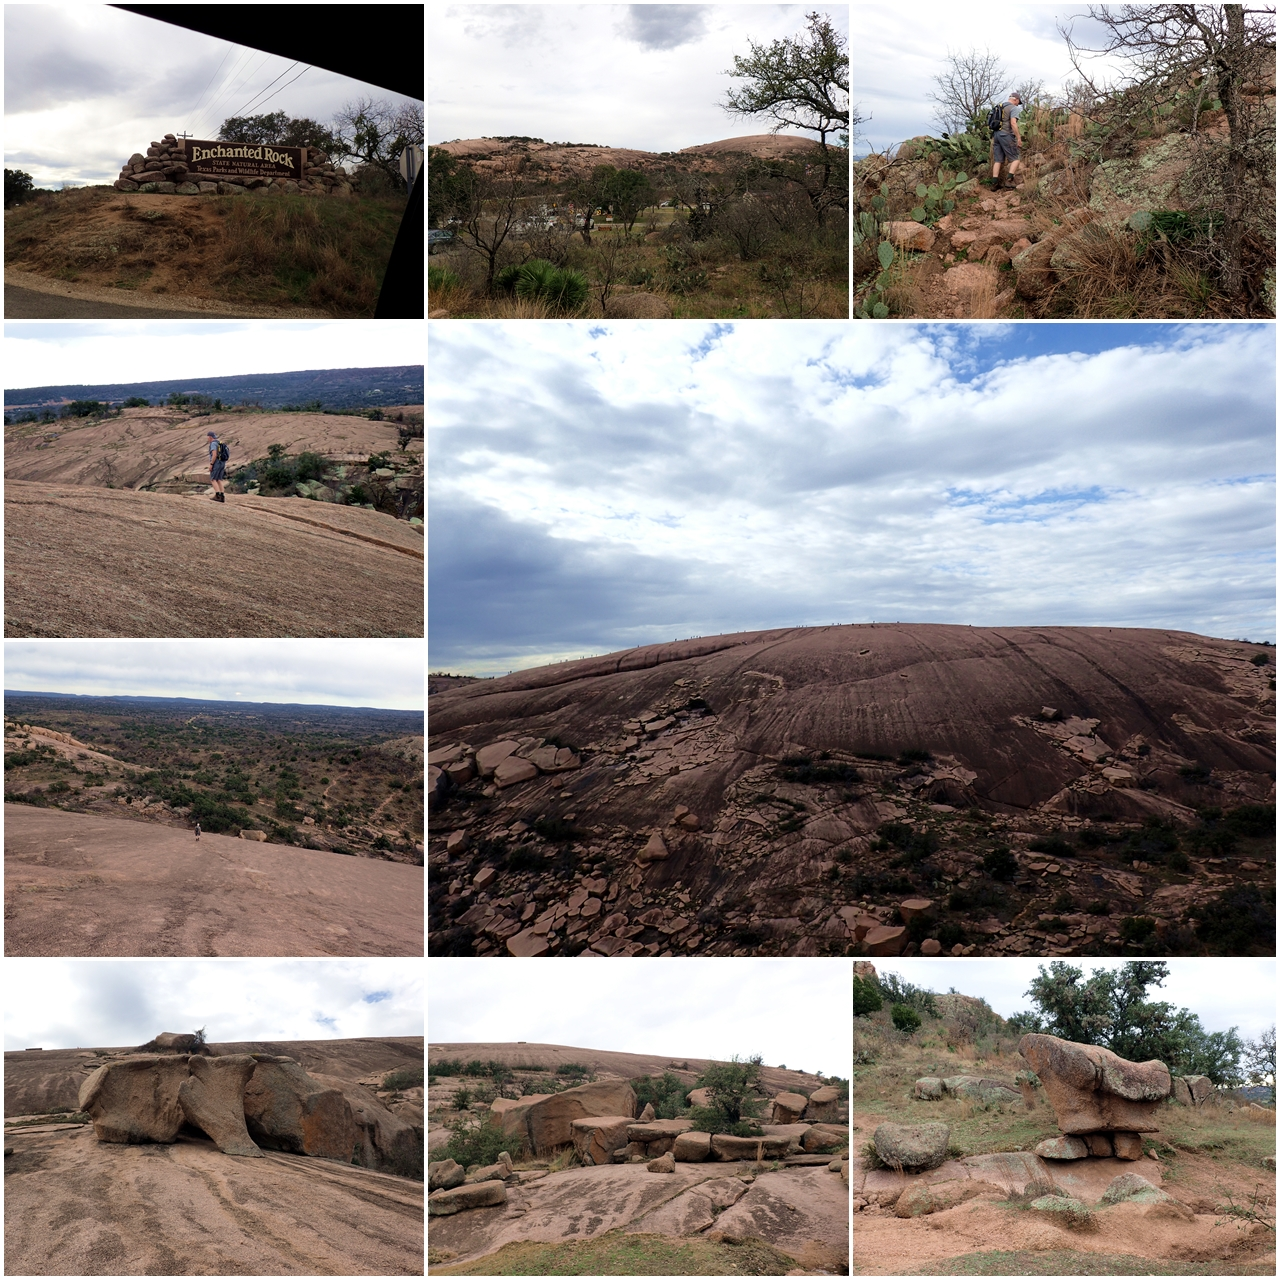 Enchanted Rock.jpg